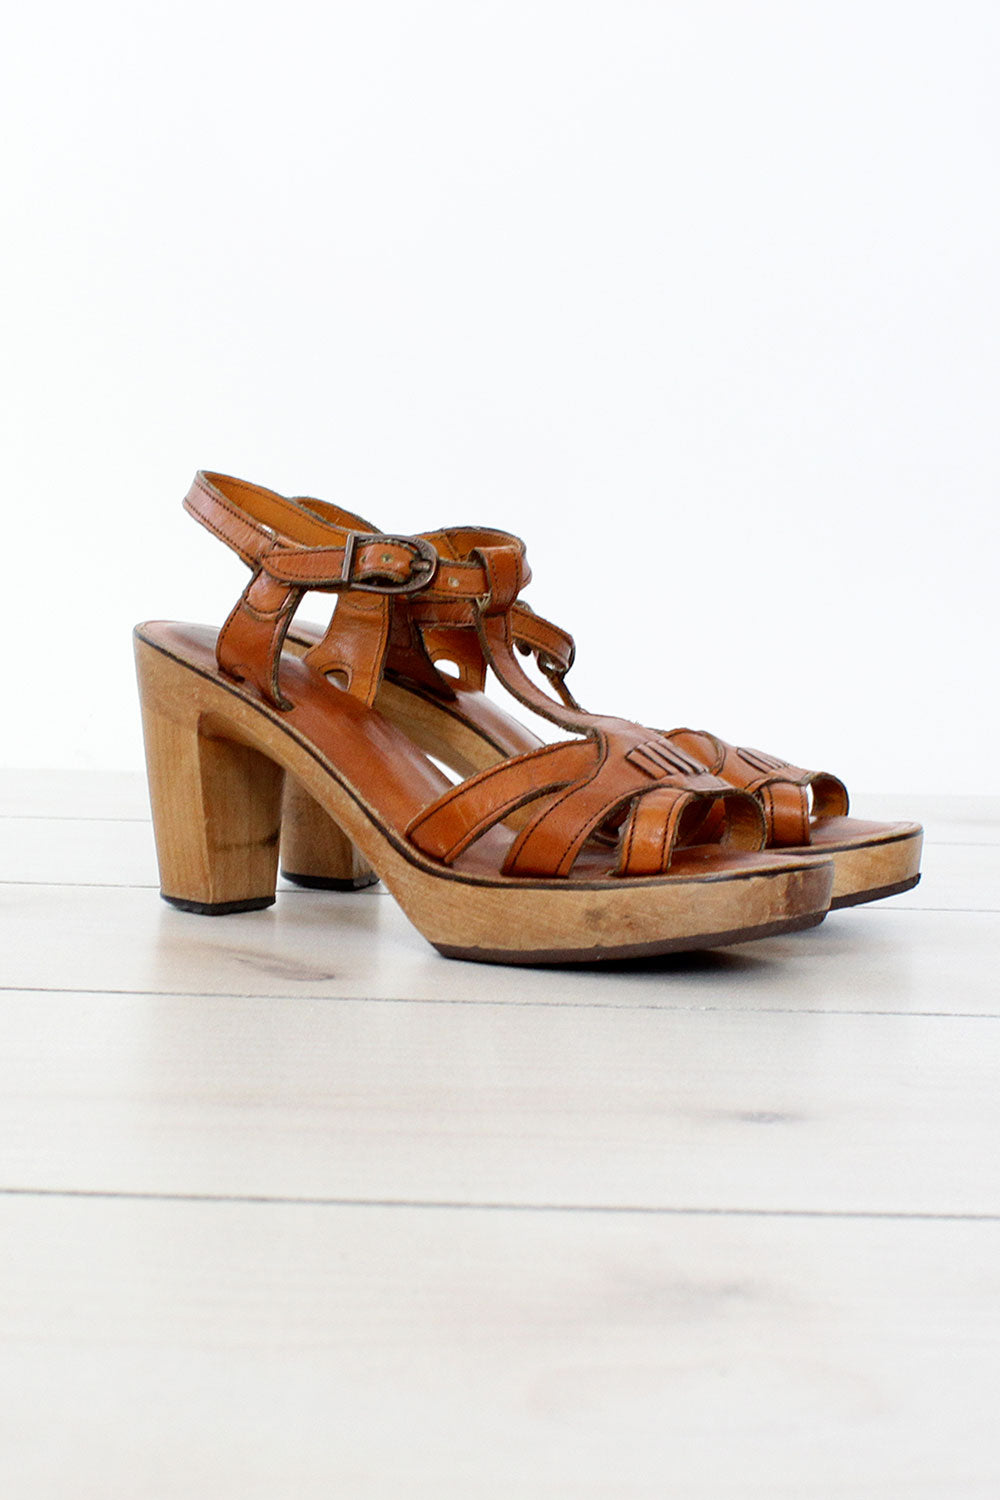 d0faf433576 70s T-Strap Wood Leather Platform Sandals 8 – OMNIA